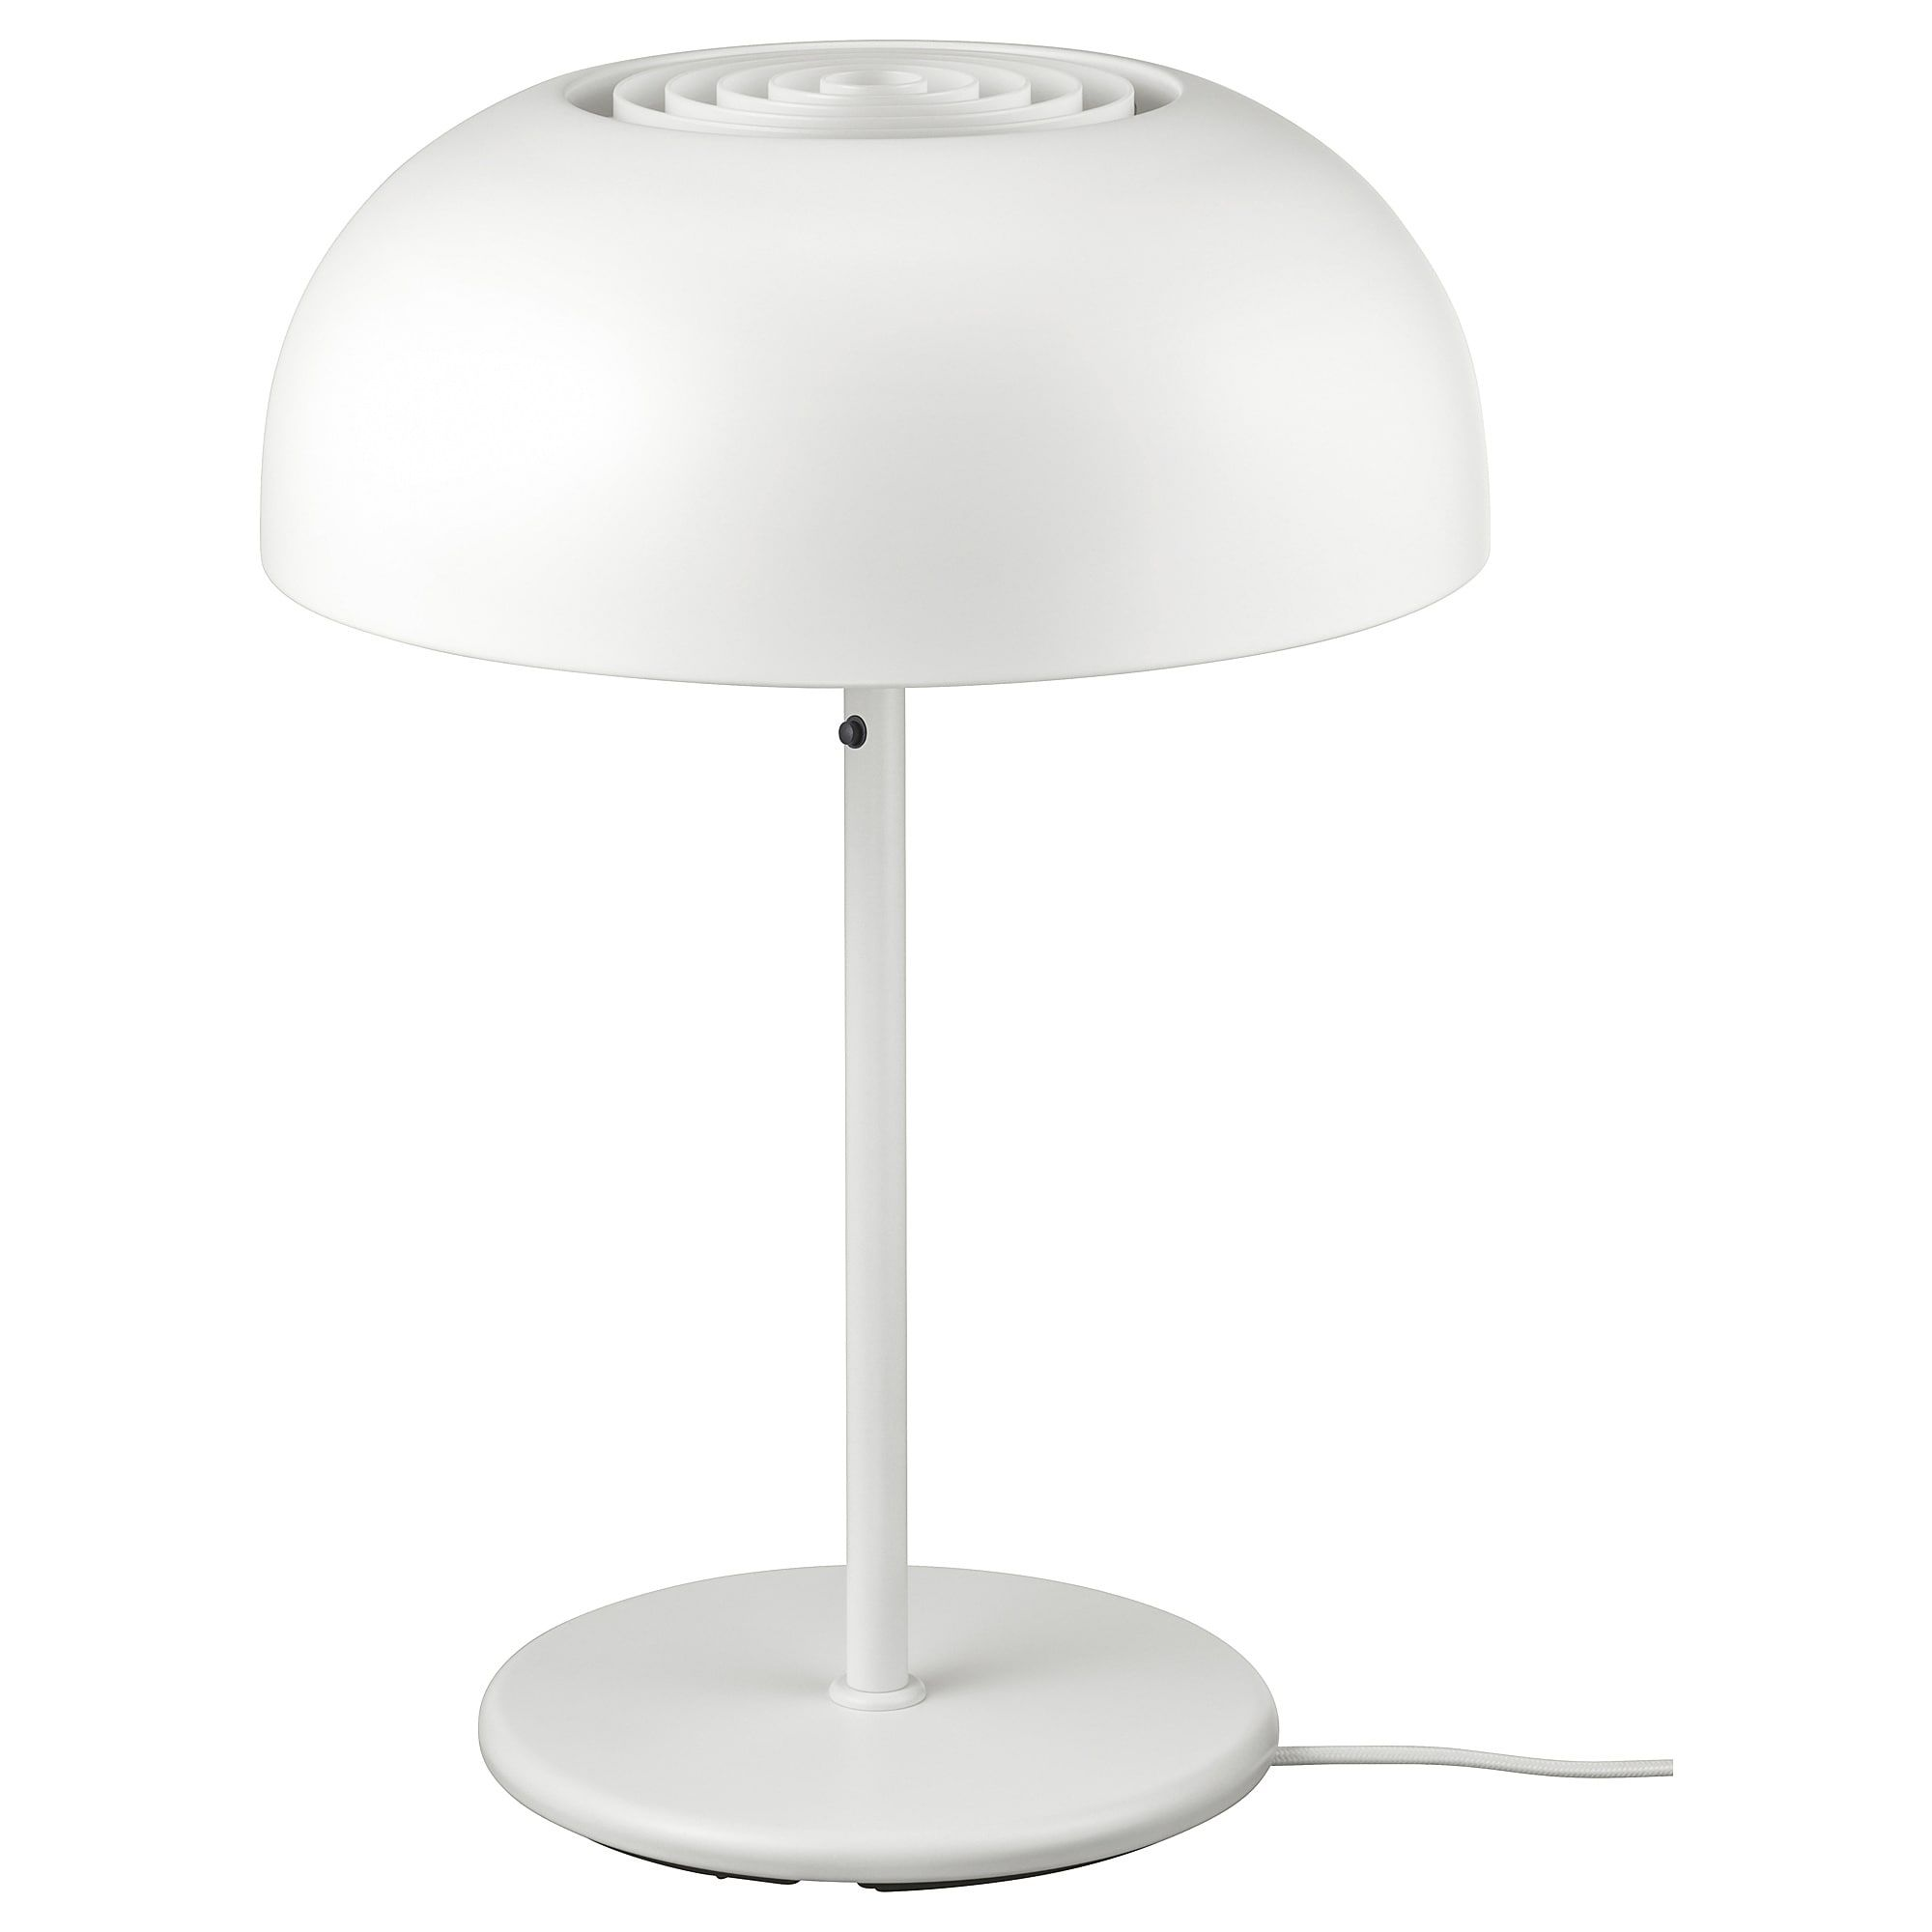 Nymane Table Lamp With Led Bulb White Table Lamp White Table Lamp Lamp